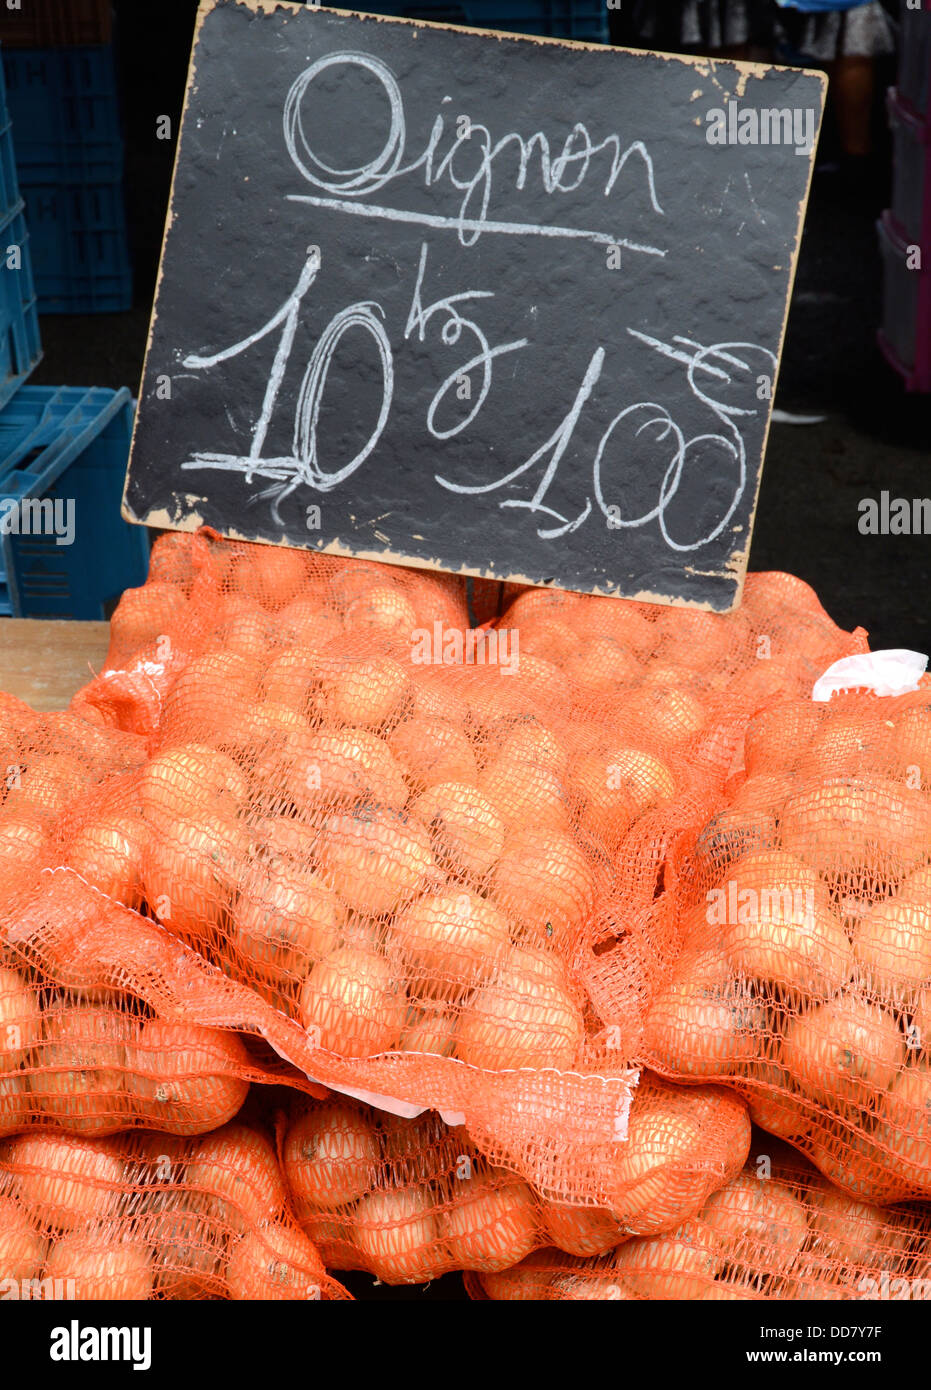 Bags of onions, Lille market - Stock Image